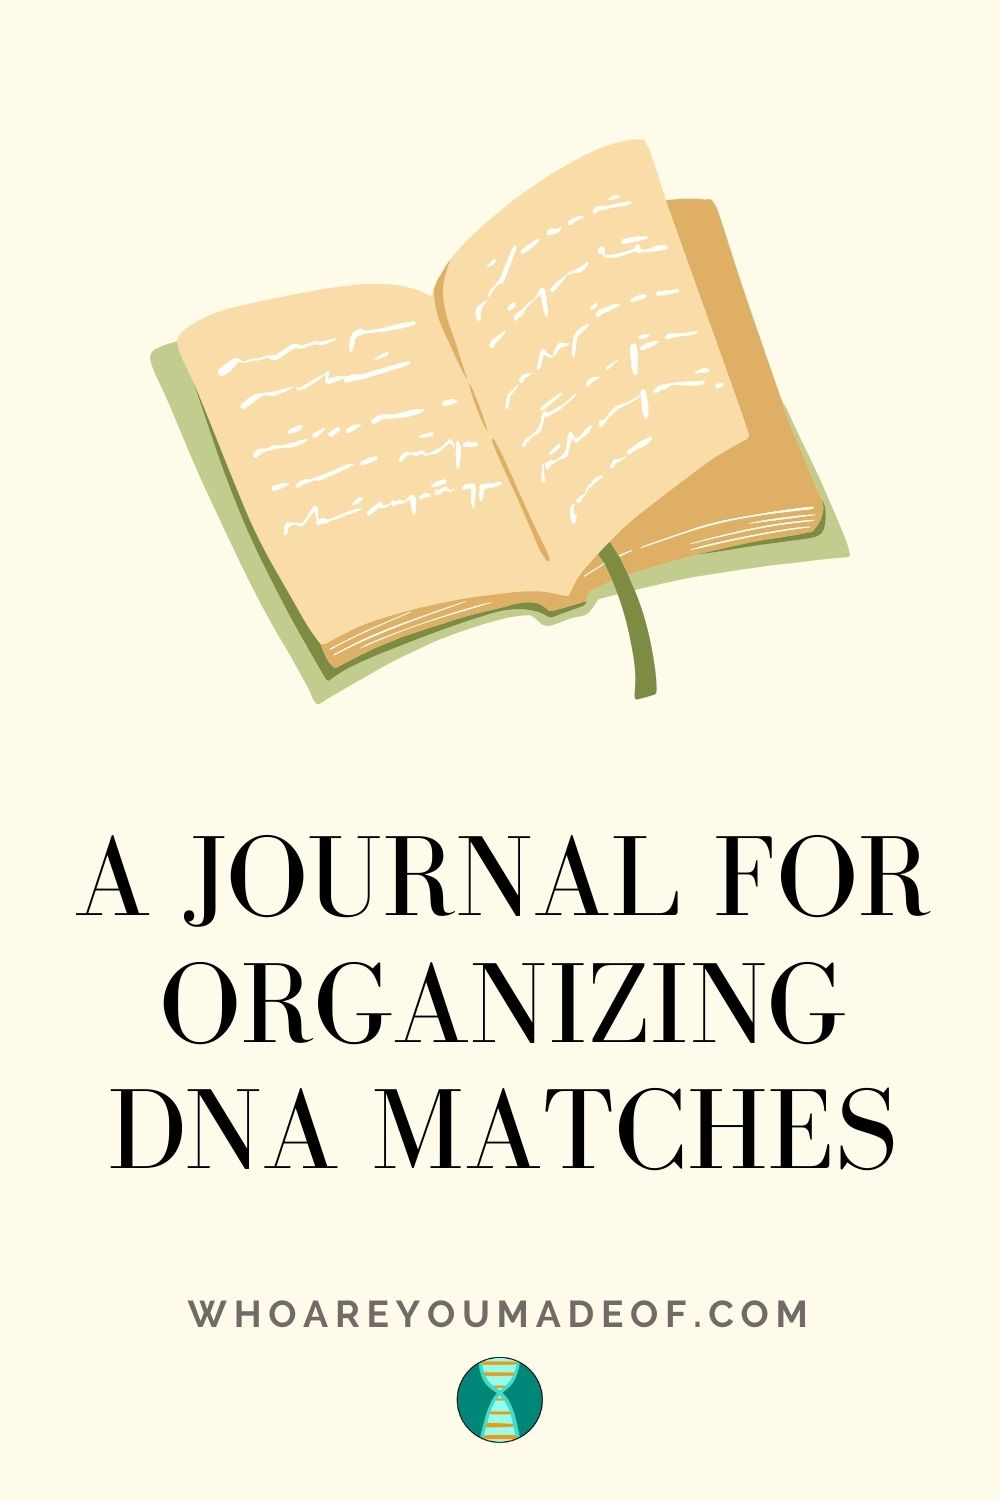 Image with a journal depicting the subject of the post, which is a journal for organizing DNA matches - optimized for size and pinterest